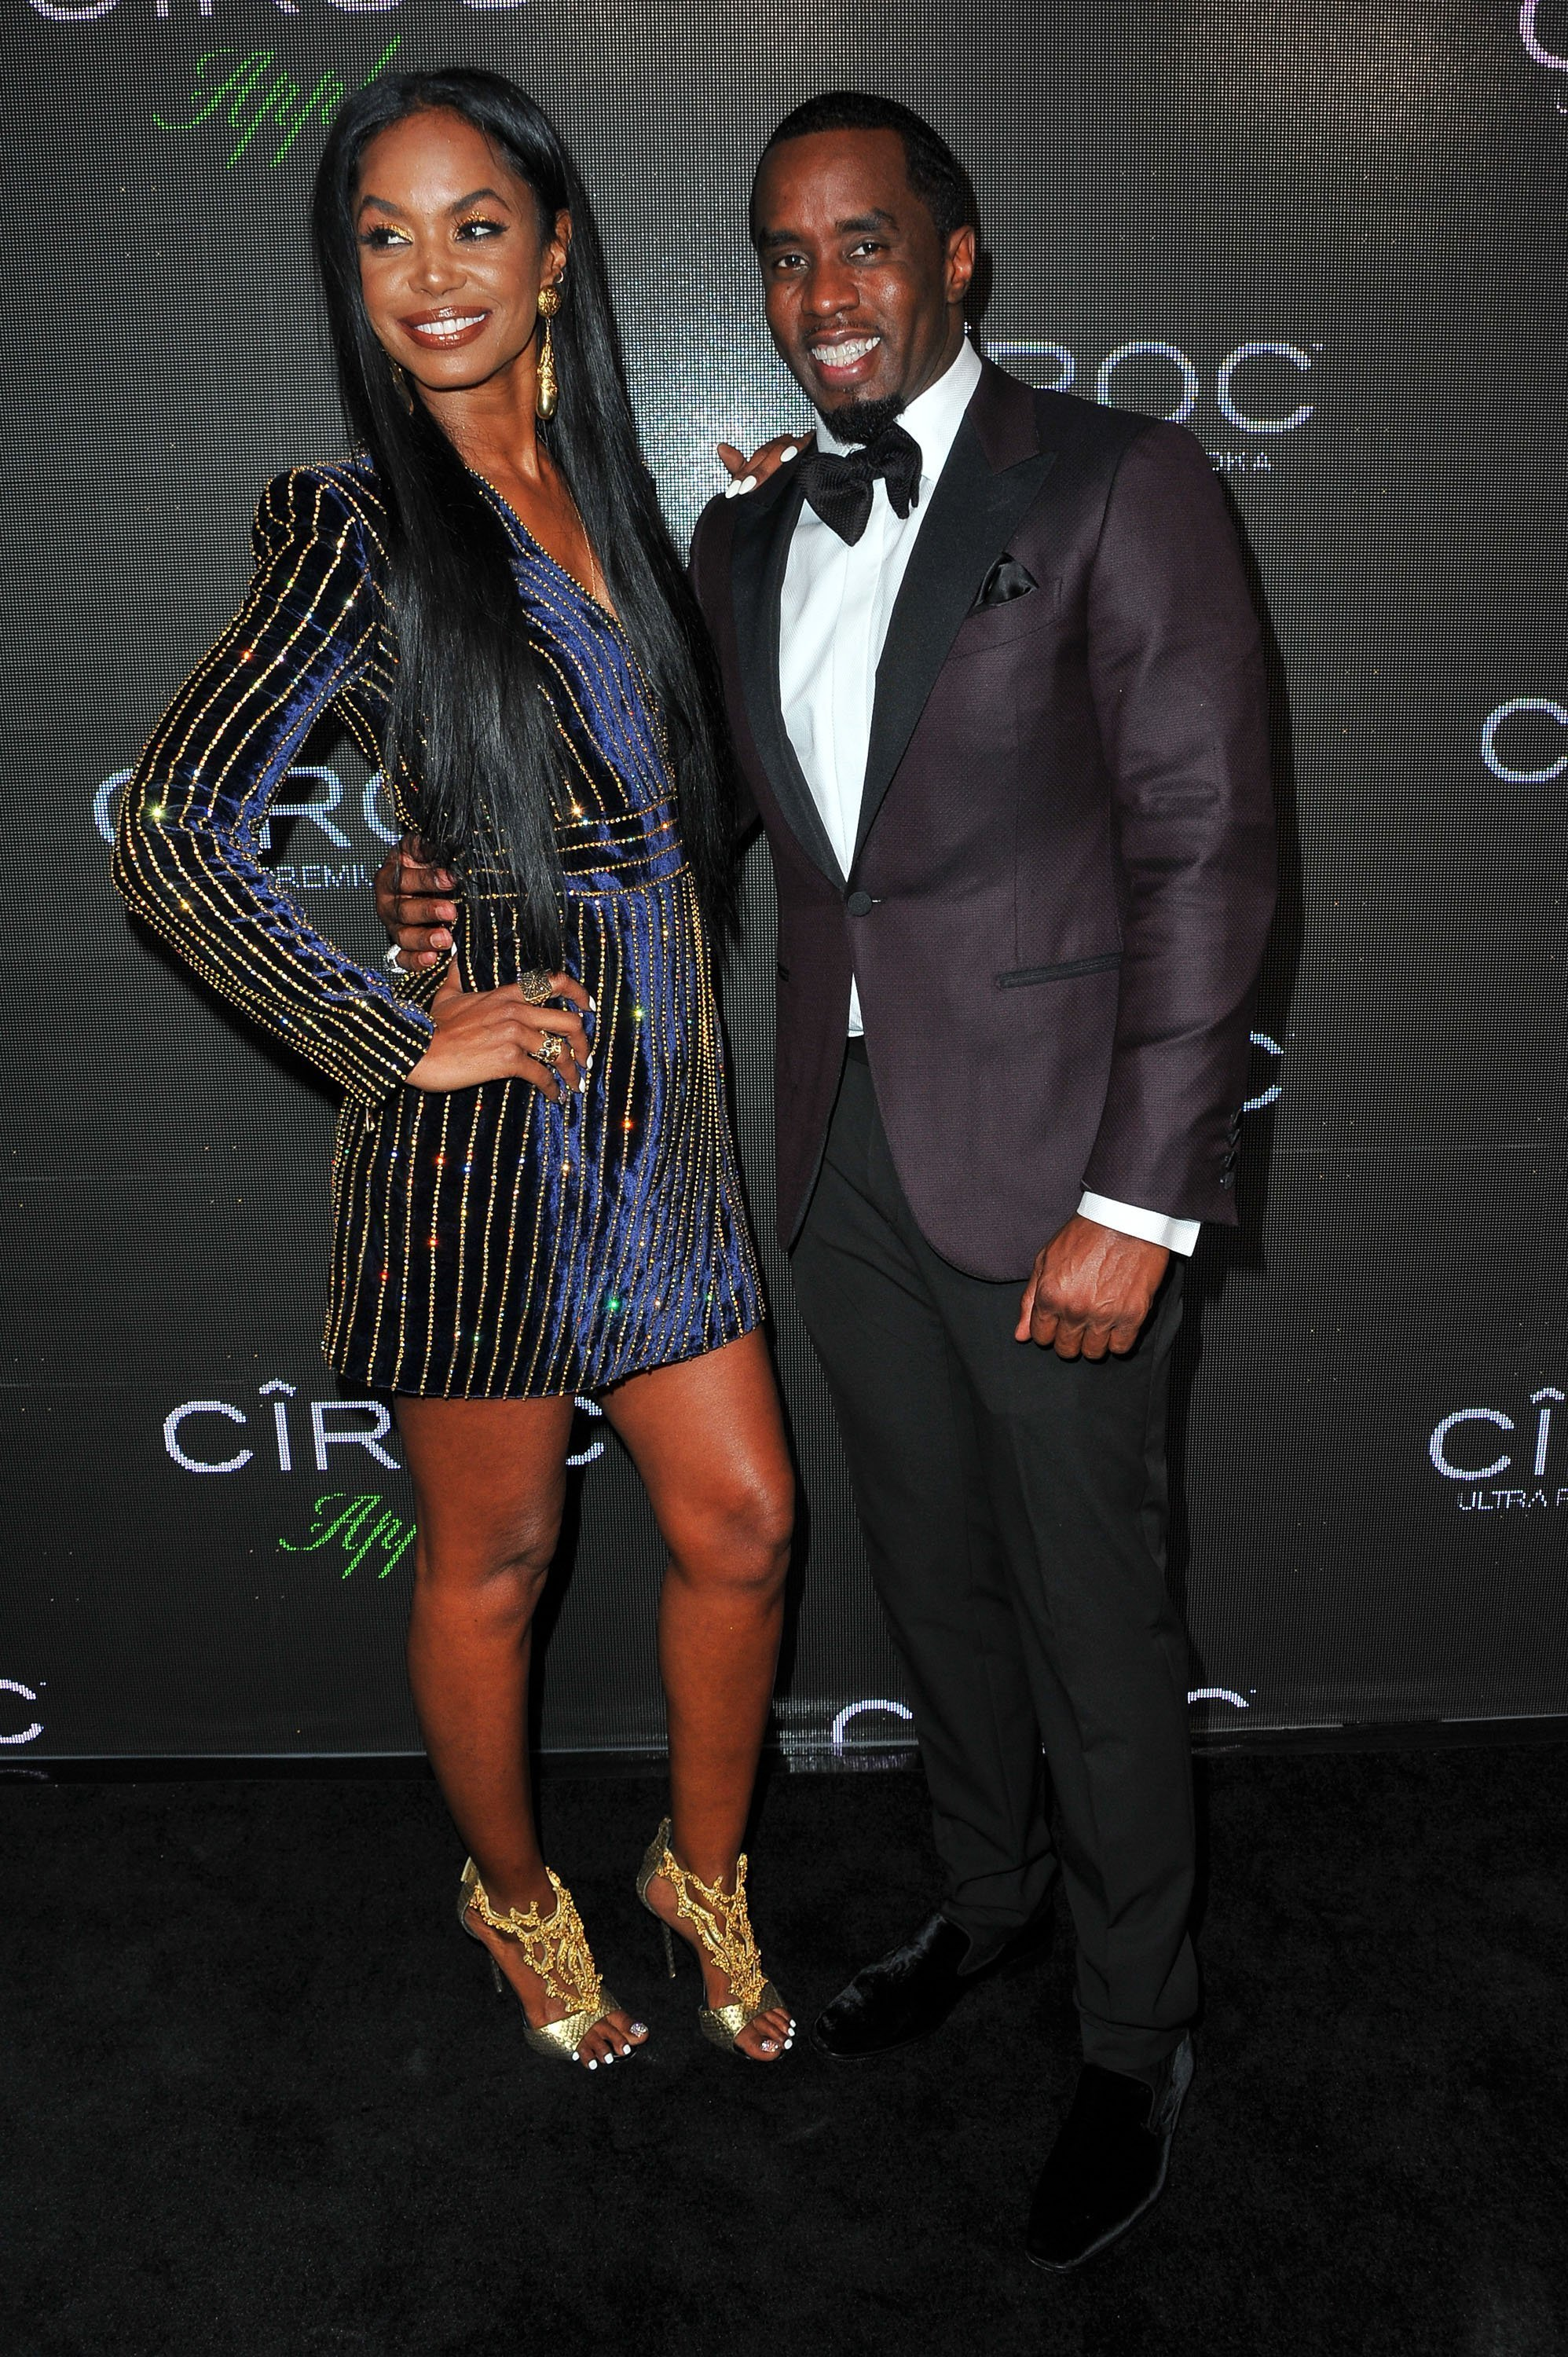 Kim Porter and Diddy during the latter's birthday celebration in 2015. | Photo: Getty Images